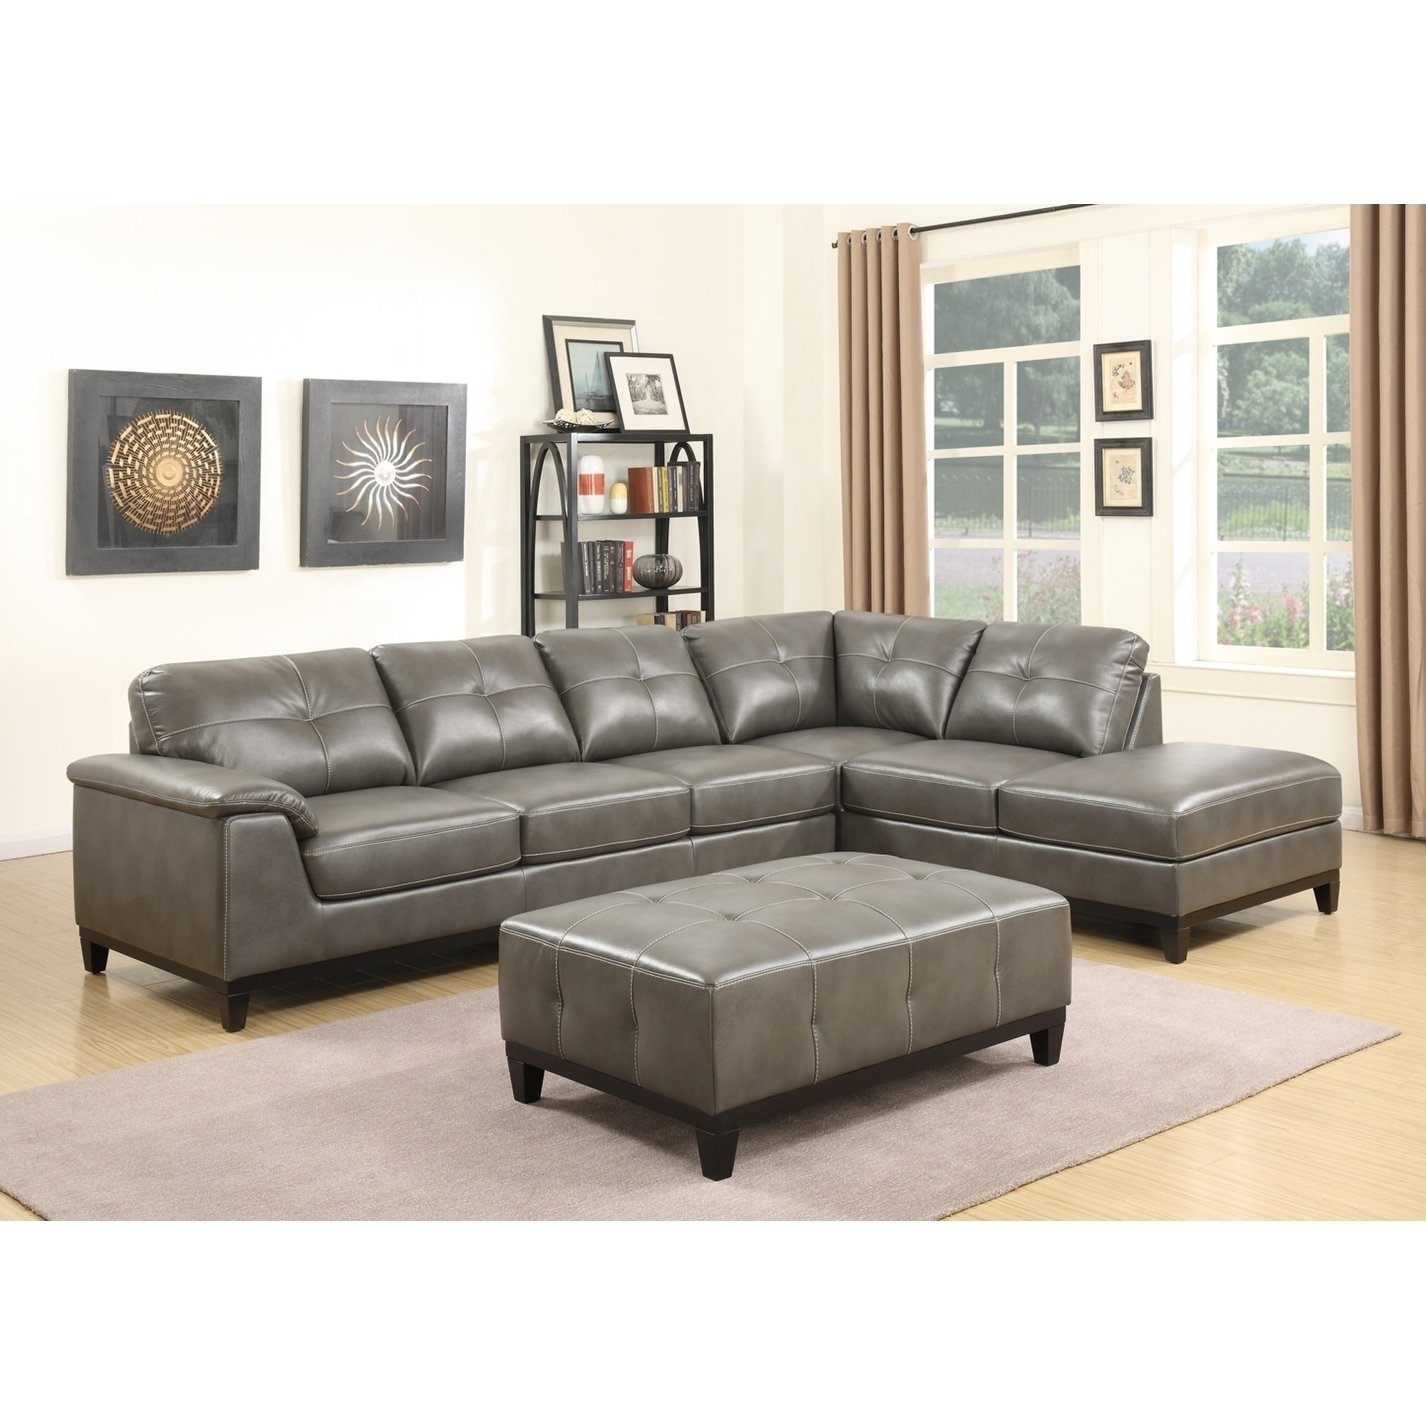 Shop Emerald Home Marquis 3 Piece Sectional With 6 Seats – Free Within Haven 3 Piece Sectionals (View 17 of 25)